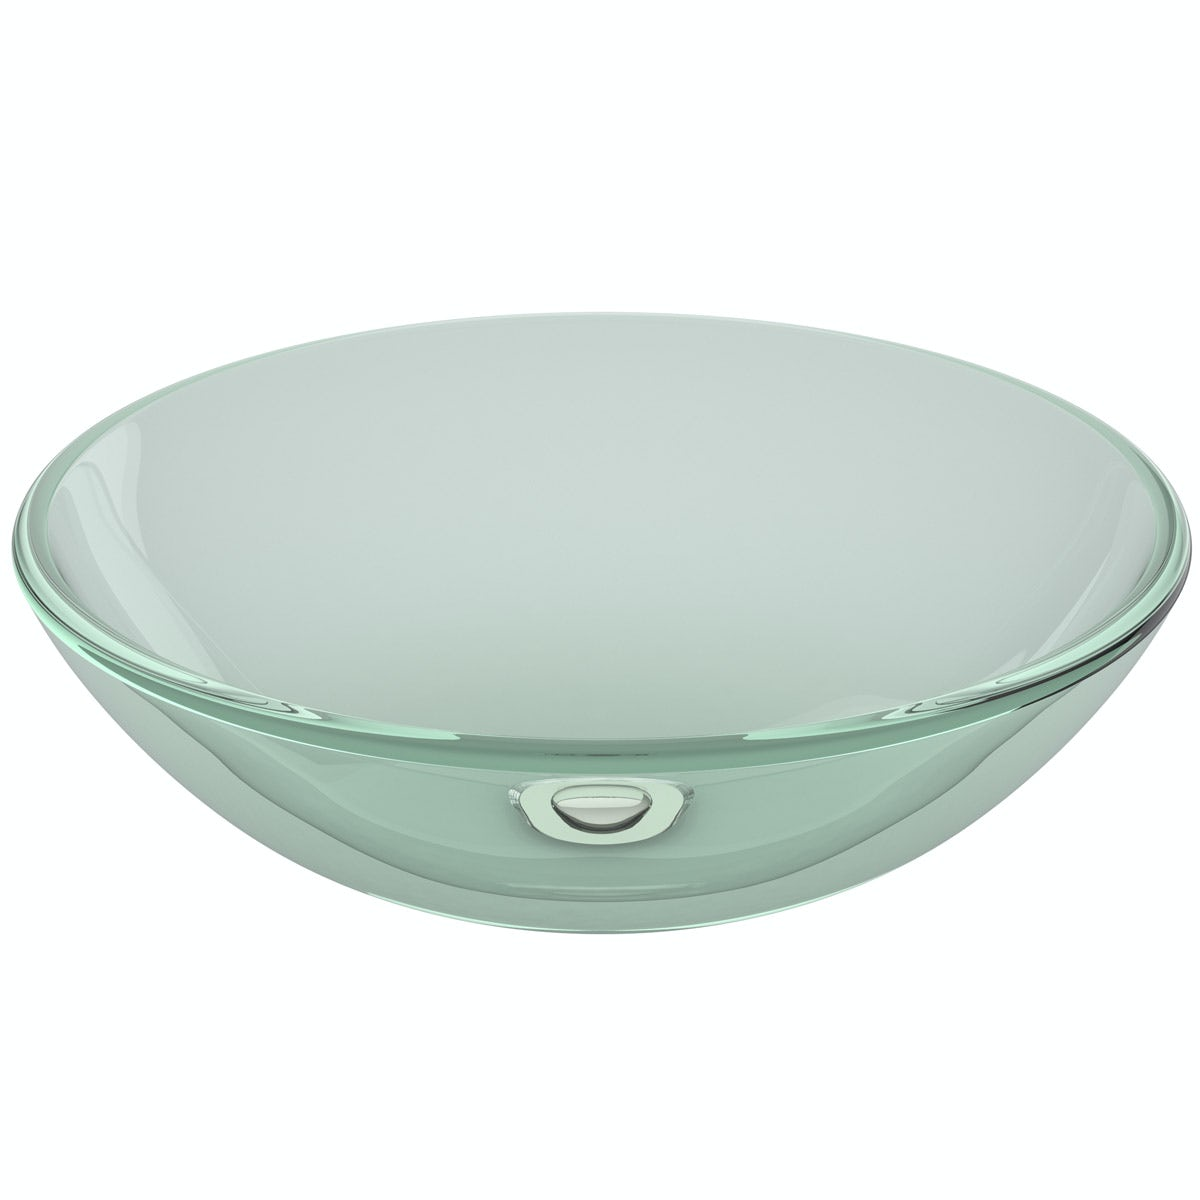 Mode Mackintosh clear glass countertop basin